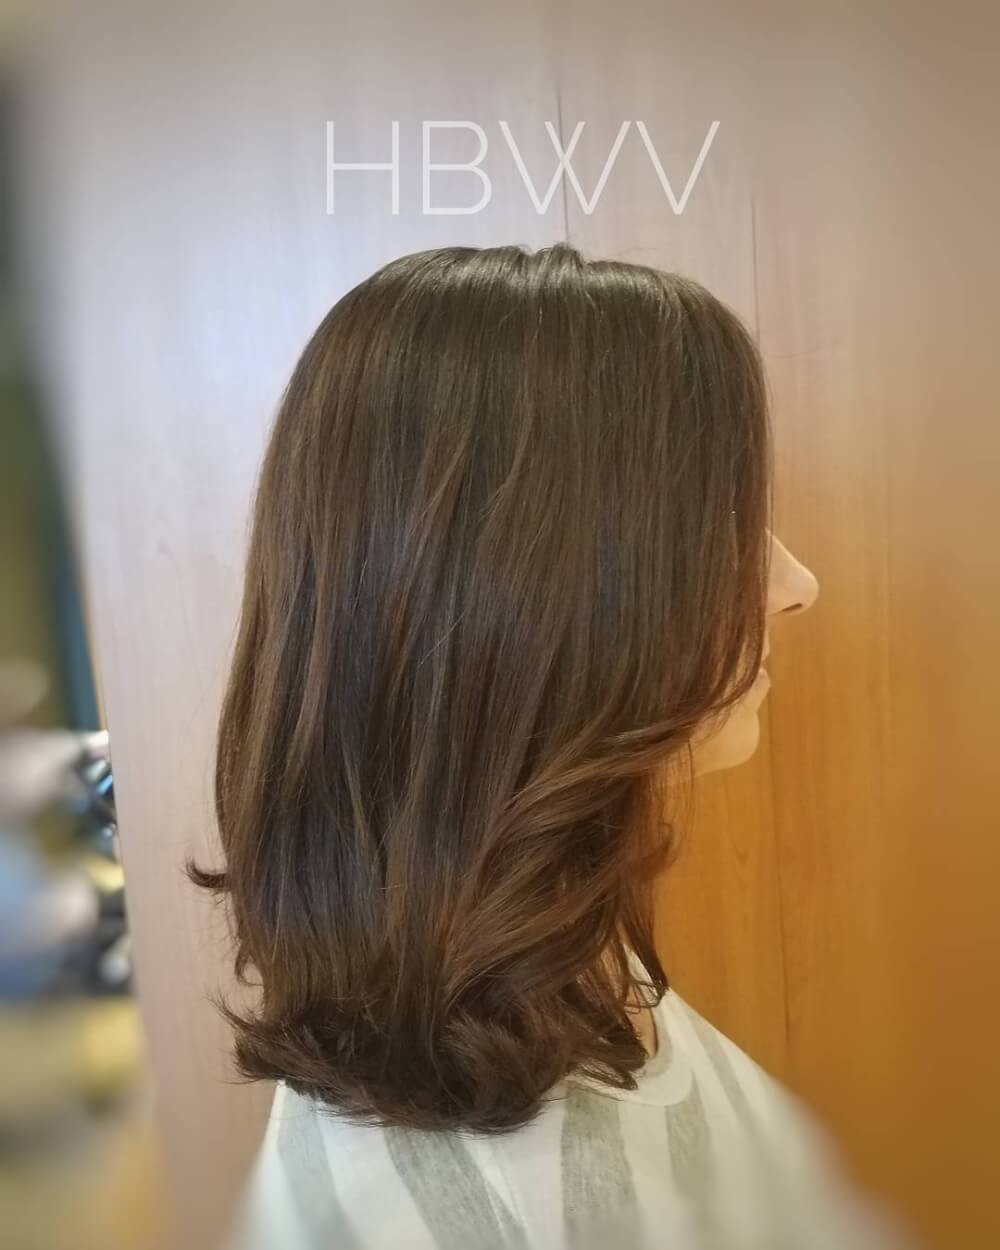 Effortless Lob hairstyle